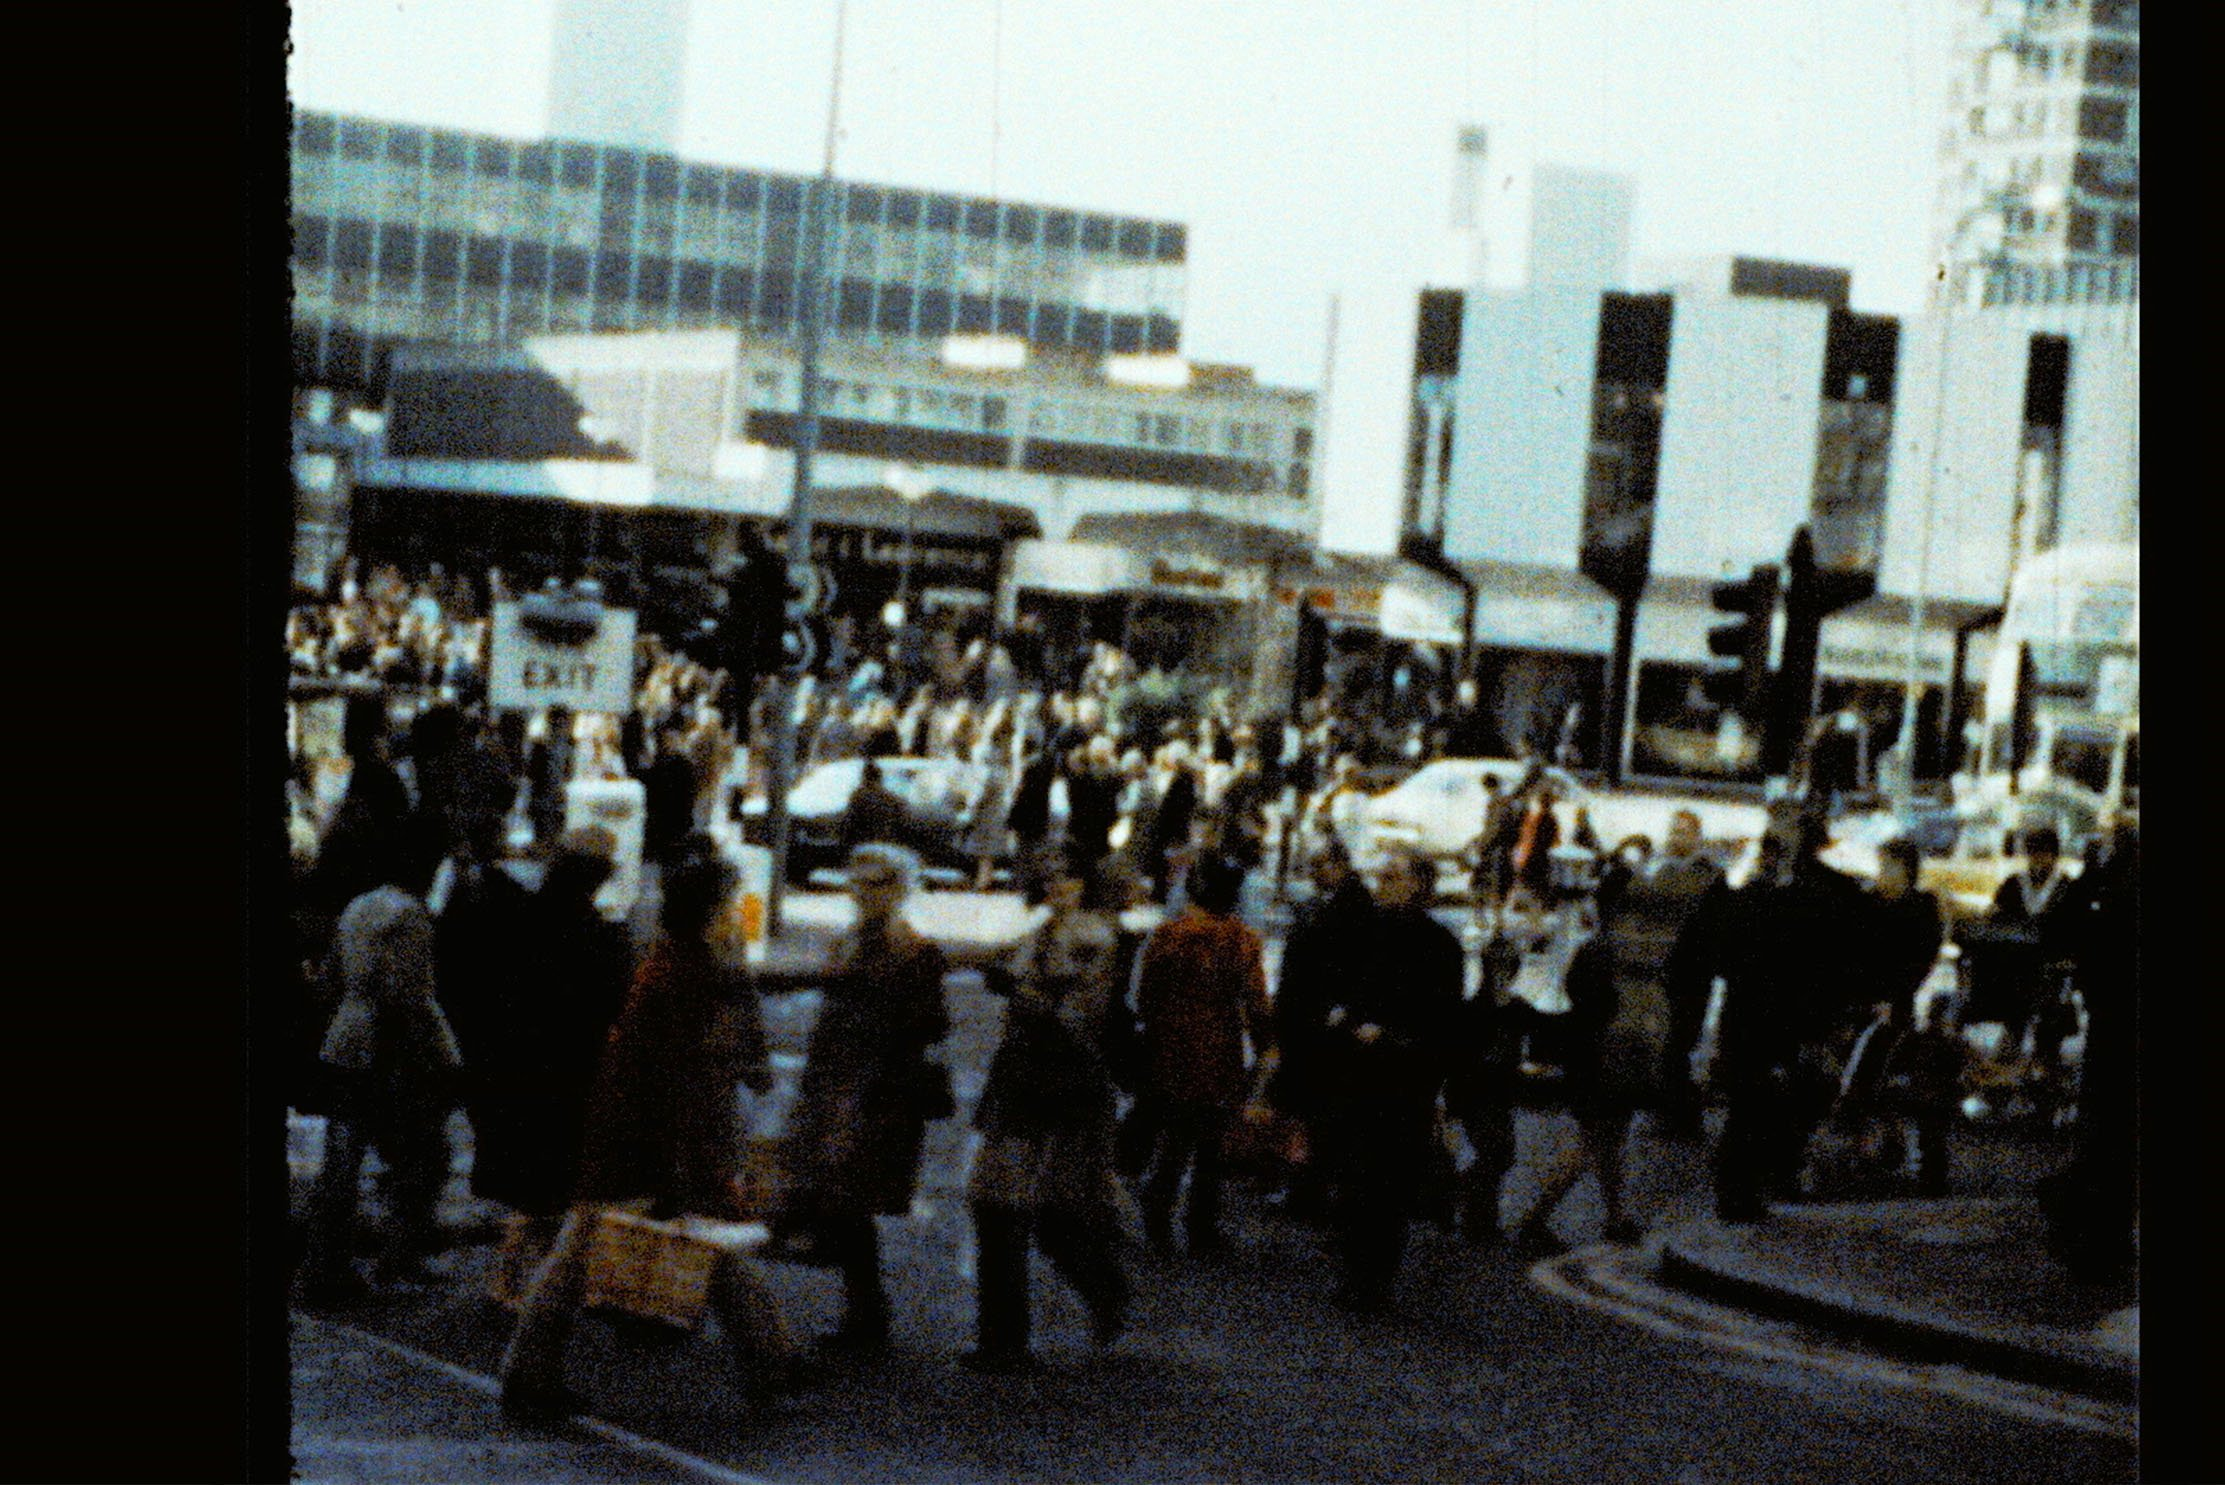 Carrying Us is a new short film which looks at the past, present and personal of Brighton's high street.